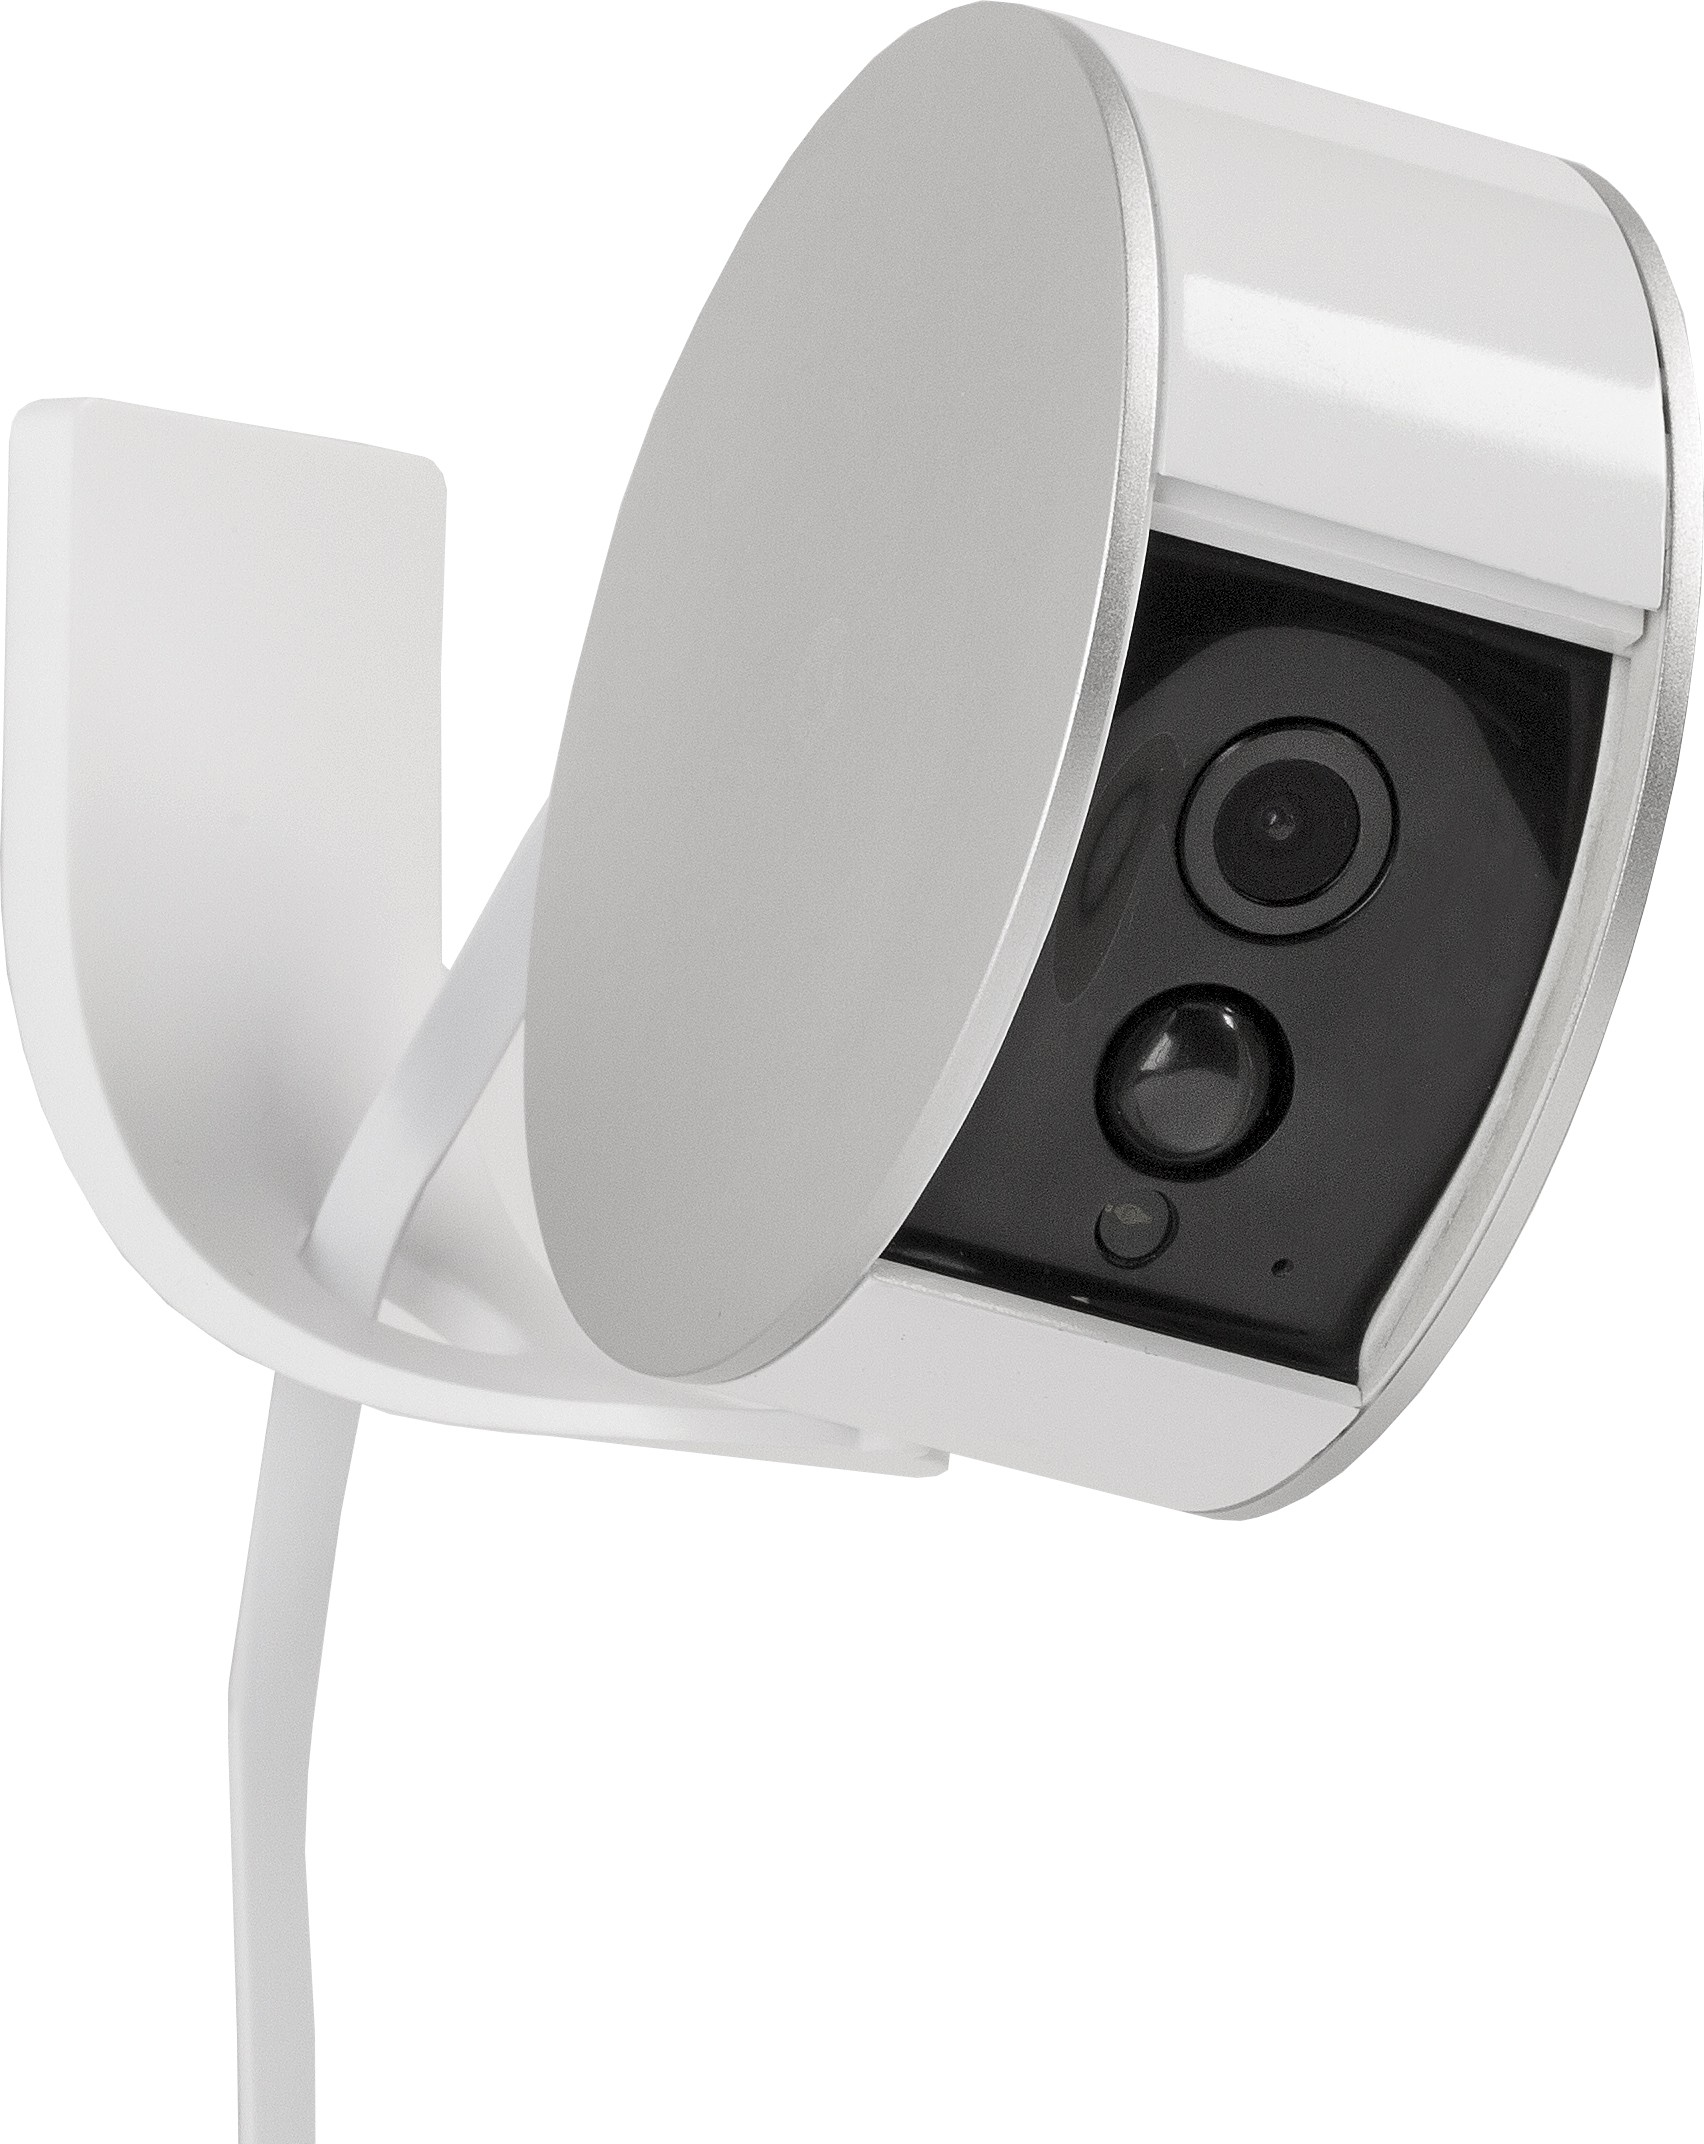 Camera Exterieur Sans Fil Support Mural Pour Somfy Security Camera | La Boutique Somfy